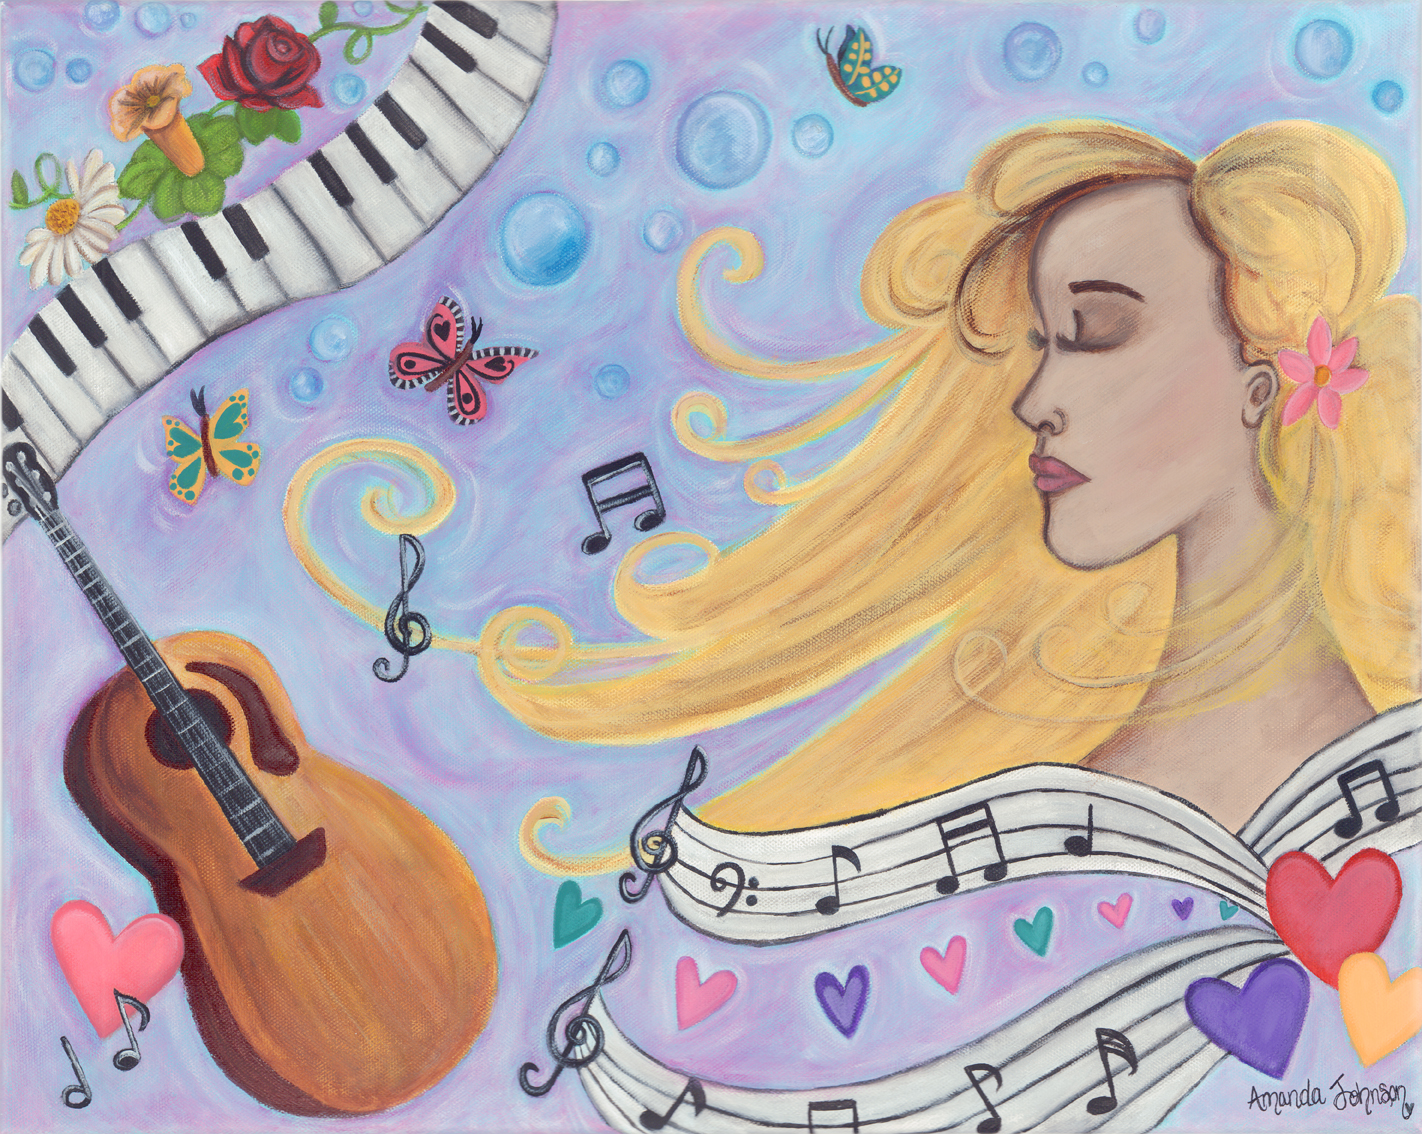 She Dreams in Music